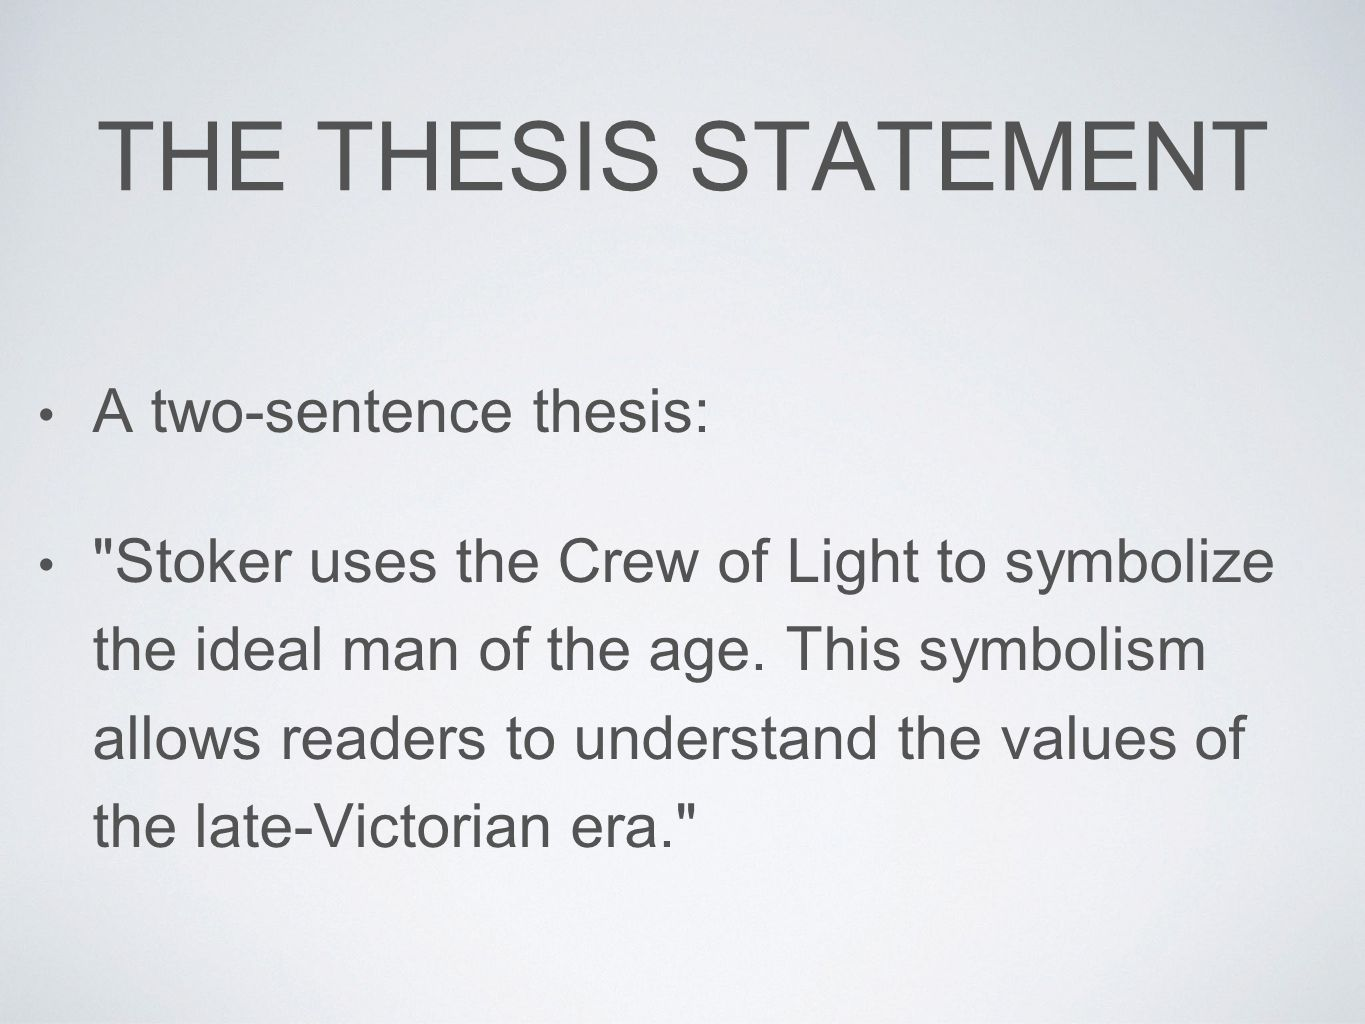 two sentence thesis statements And with good reason: the thesis sentence is typically that one  truth in both  statements but want to subordinate one argument to the other.